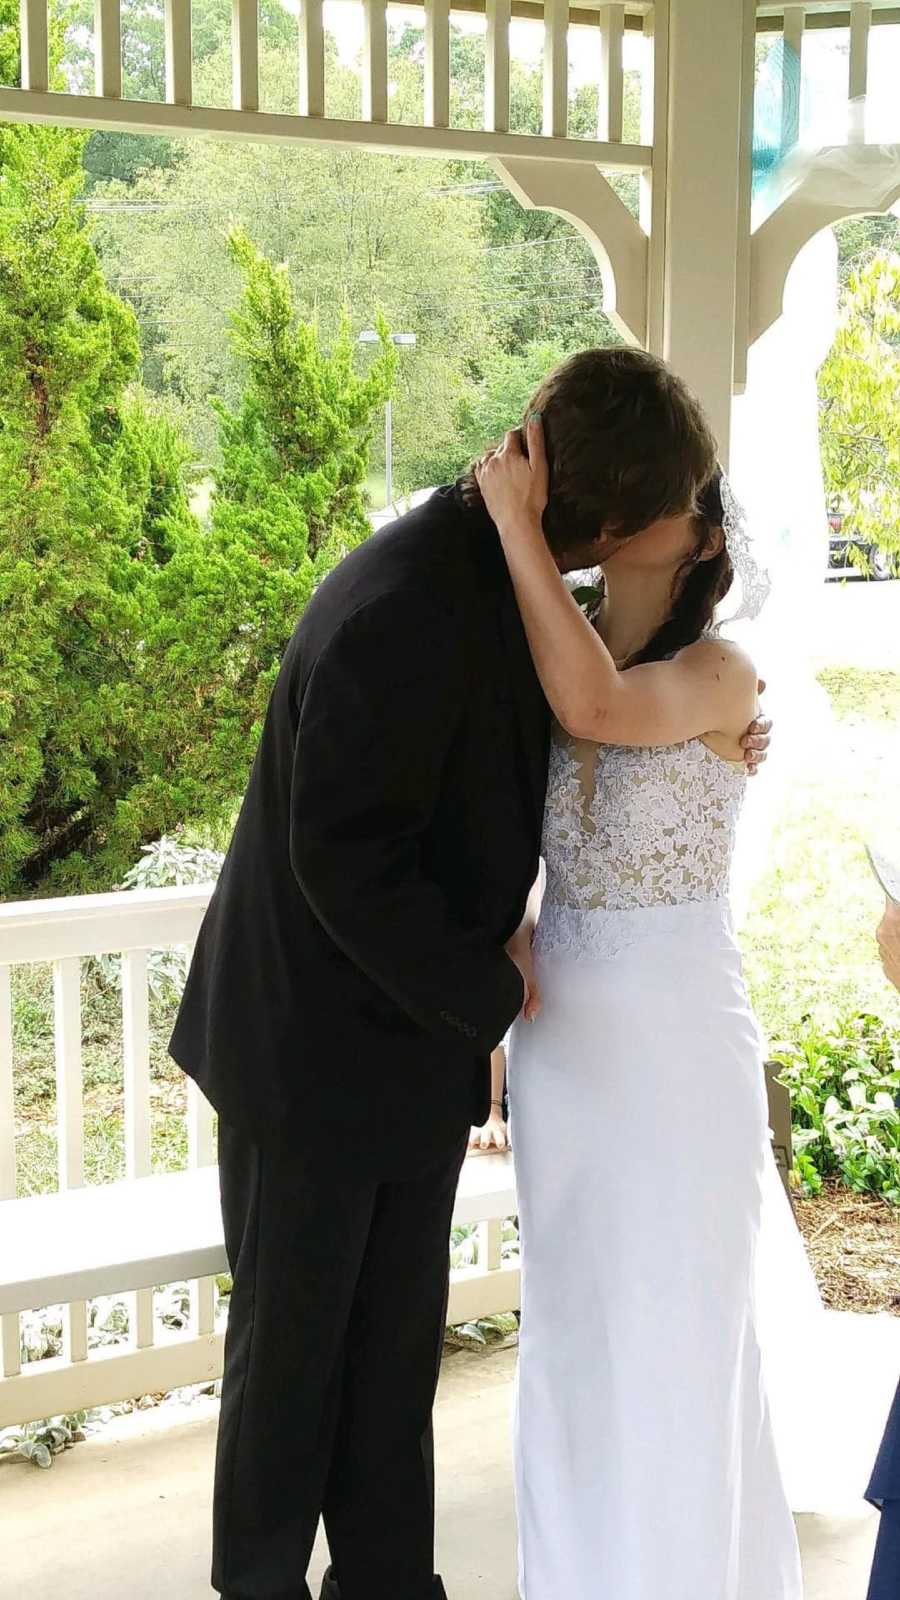 Young bride in wedding dress kissing young groom in suit